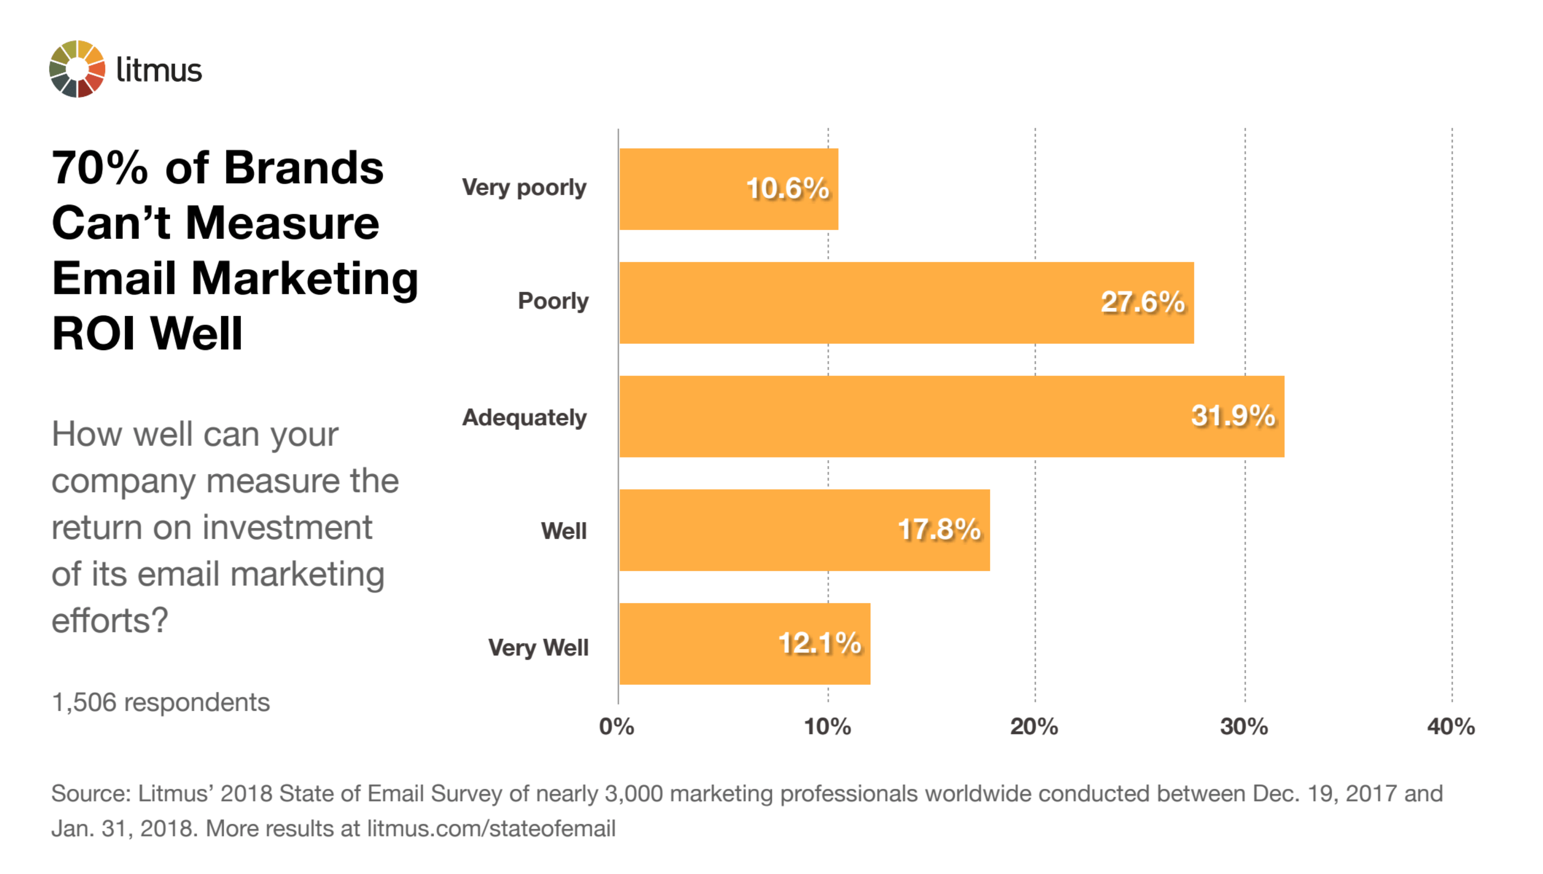 70% of Brands Can Not Measure Email Marketing ROI Well